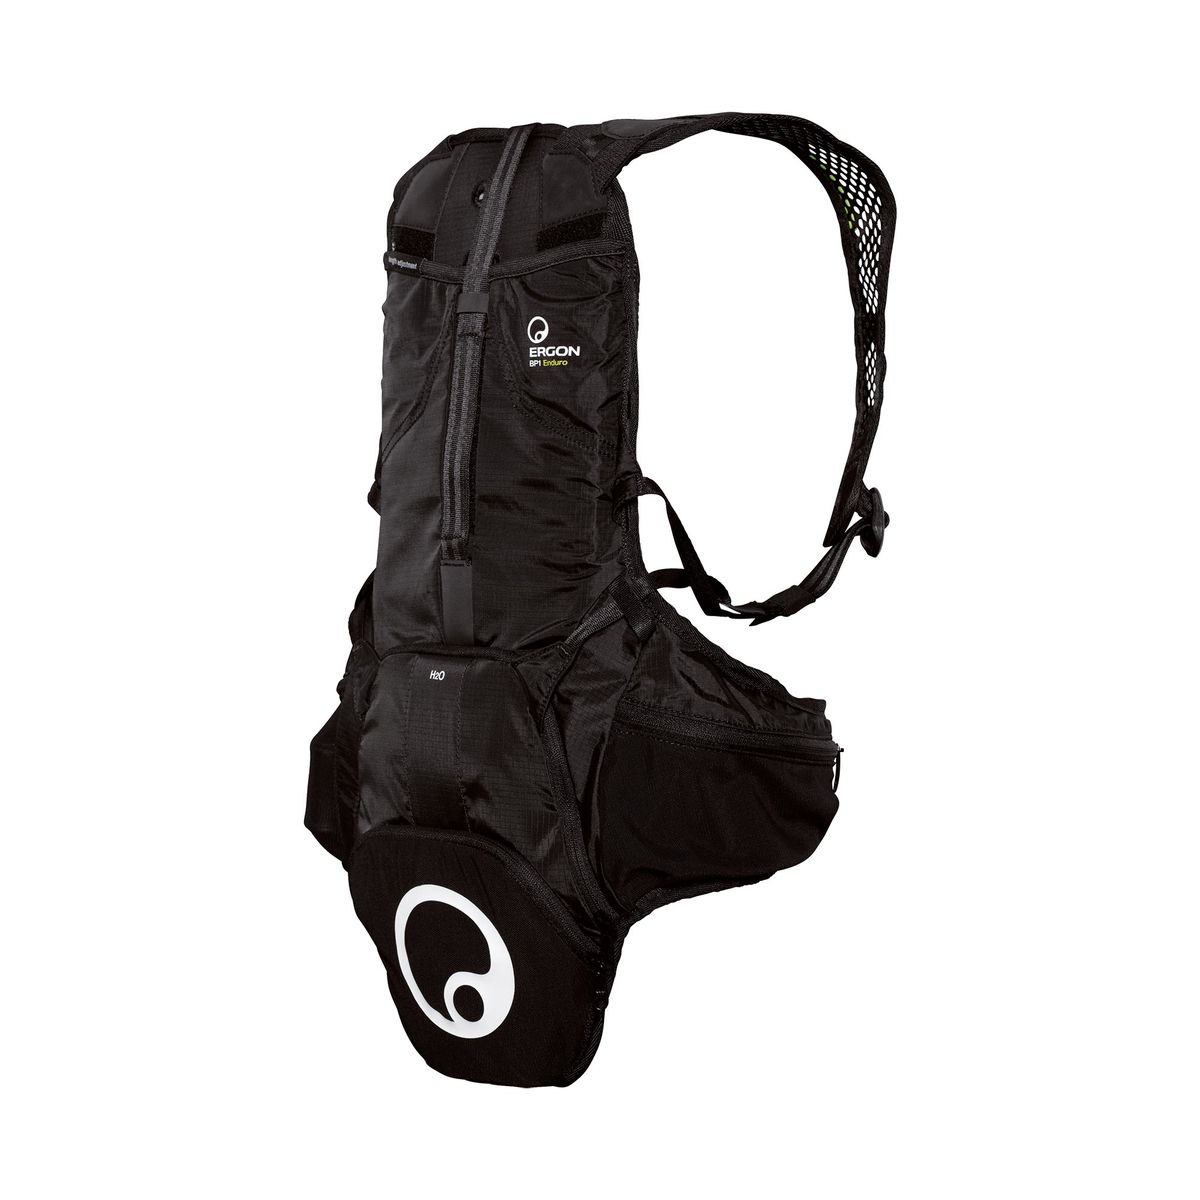 BP1 PROTECT Backpack